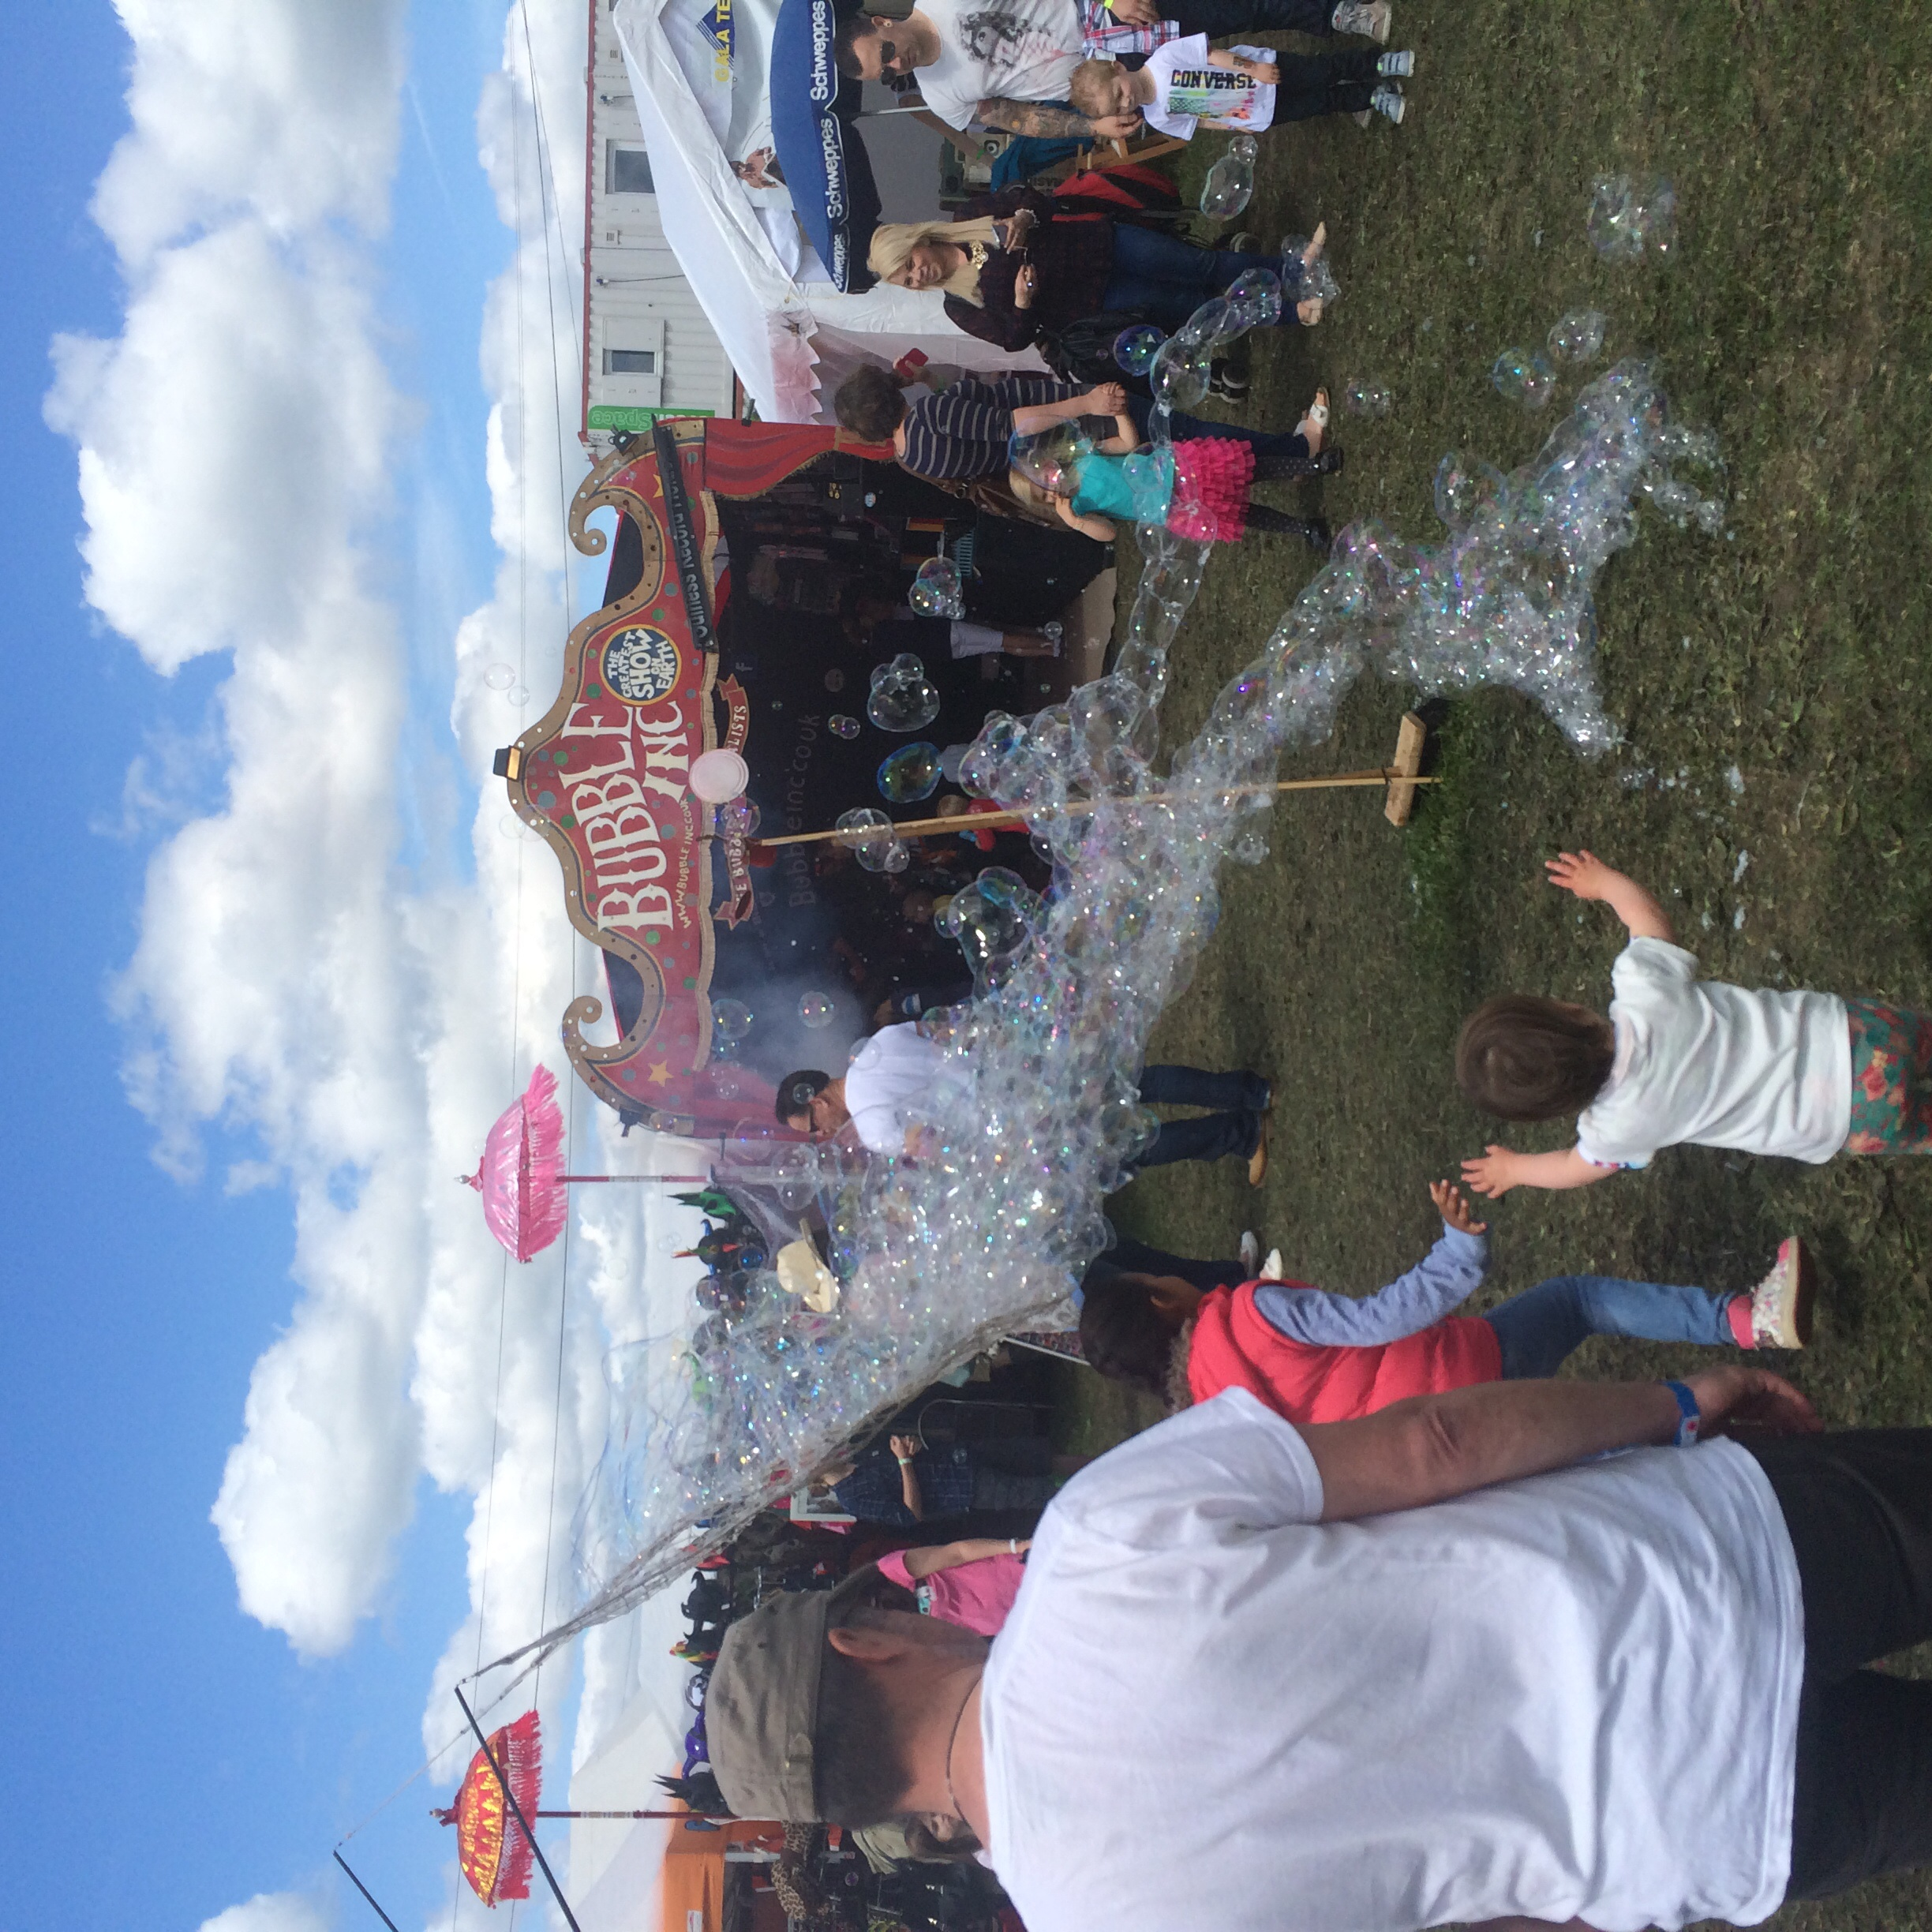 And there were bubbles, too.